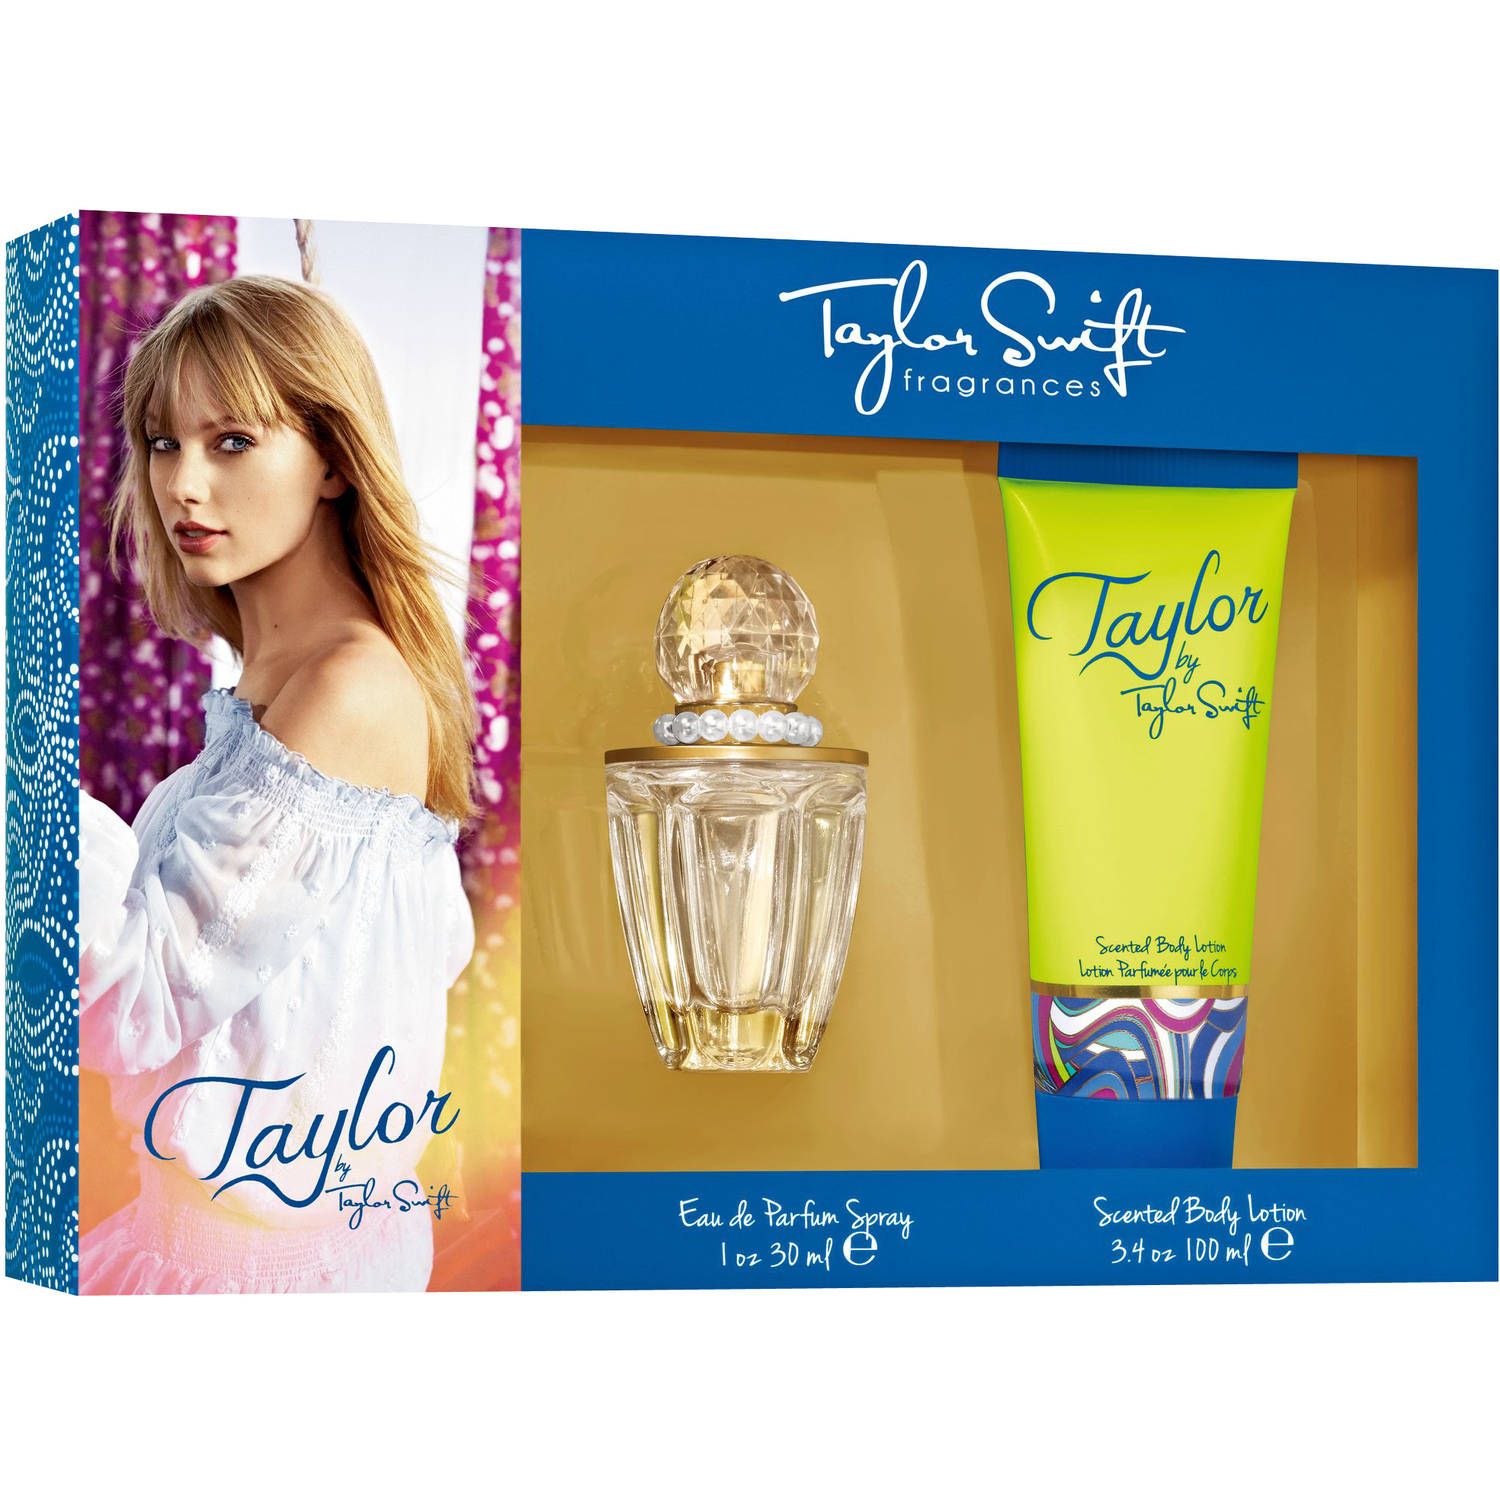 Taylor Swift Taylor Set for Women, 2 pc